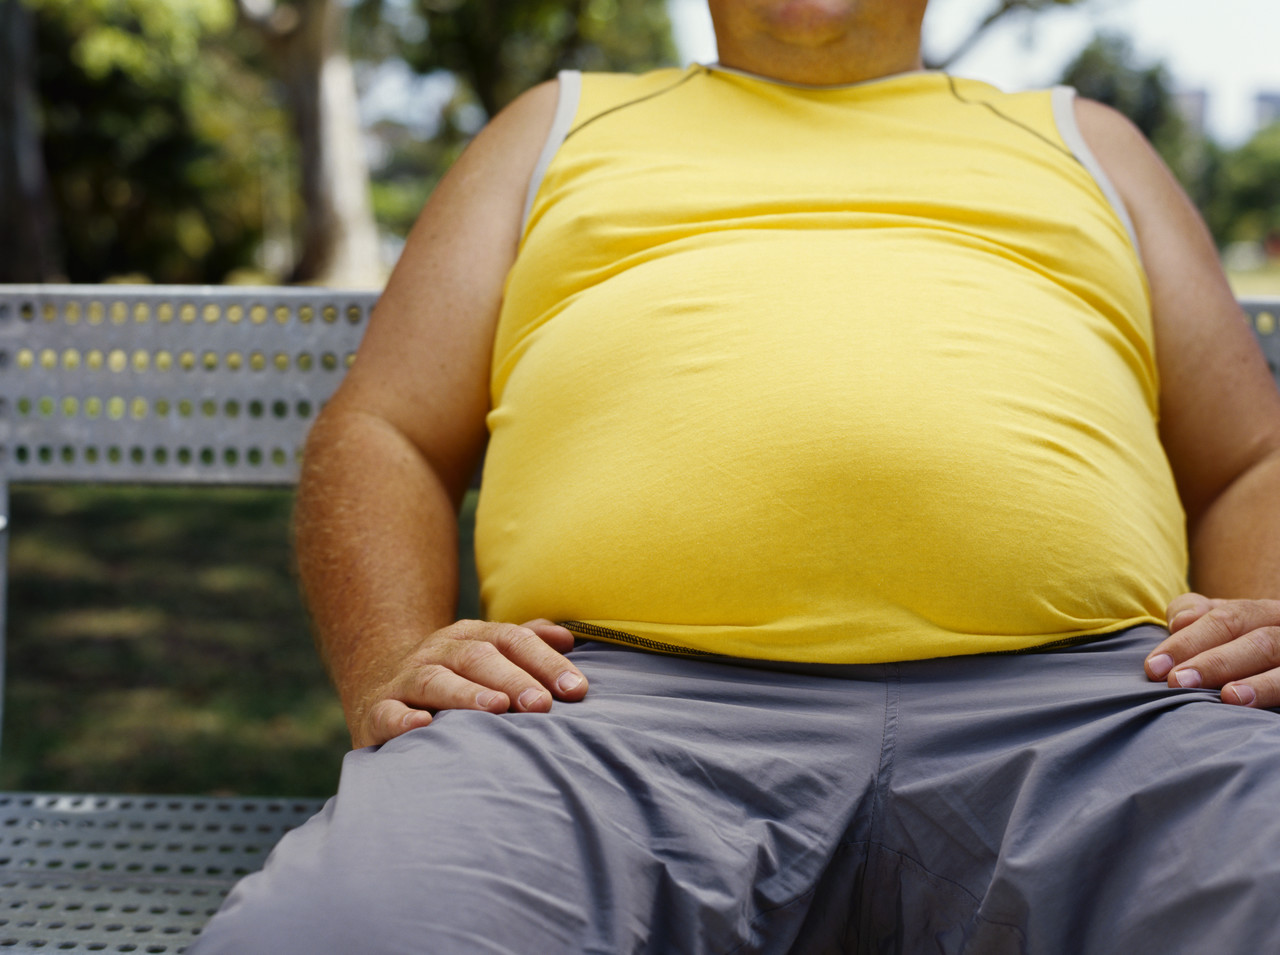 The Problems of Obesity